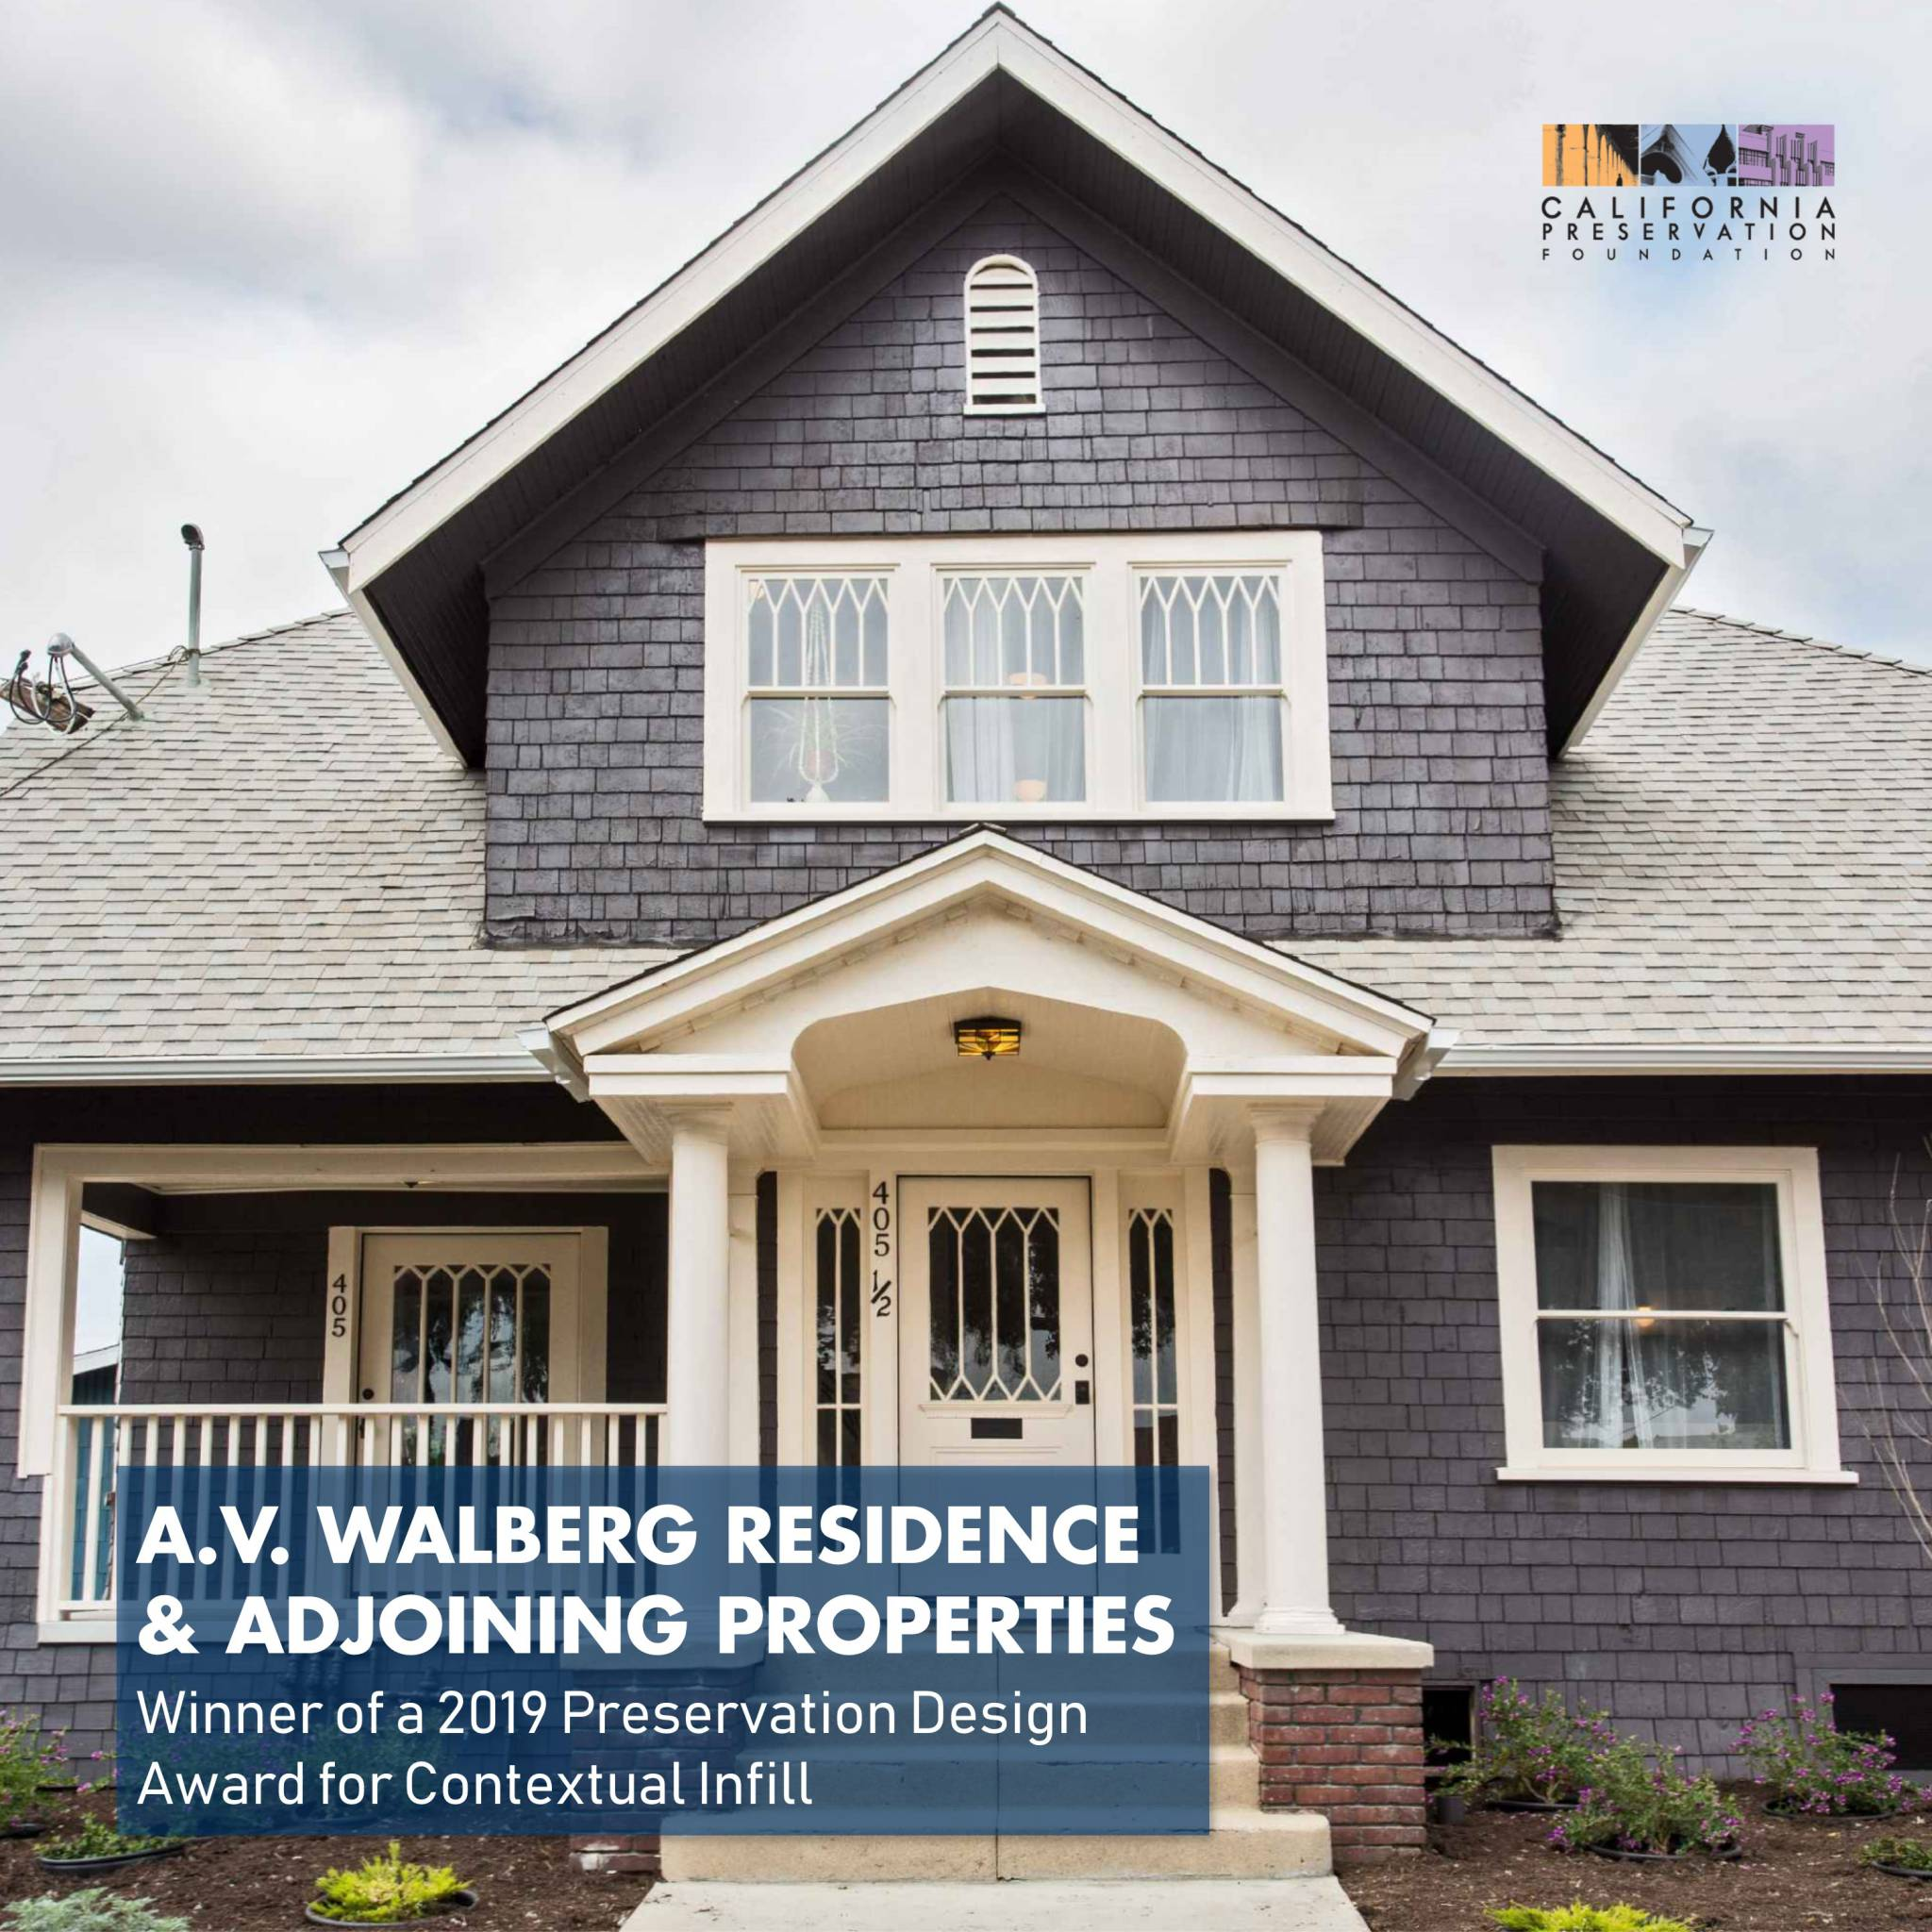 A.V. Walberg Residence & Adjoining Properties